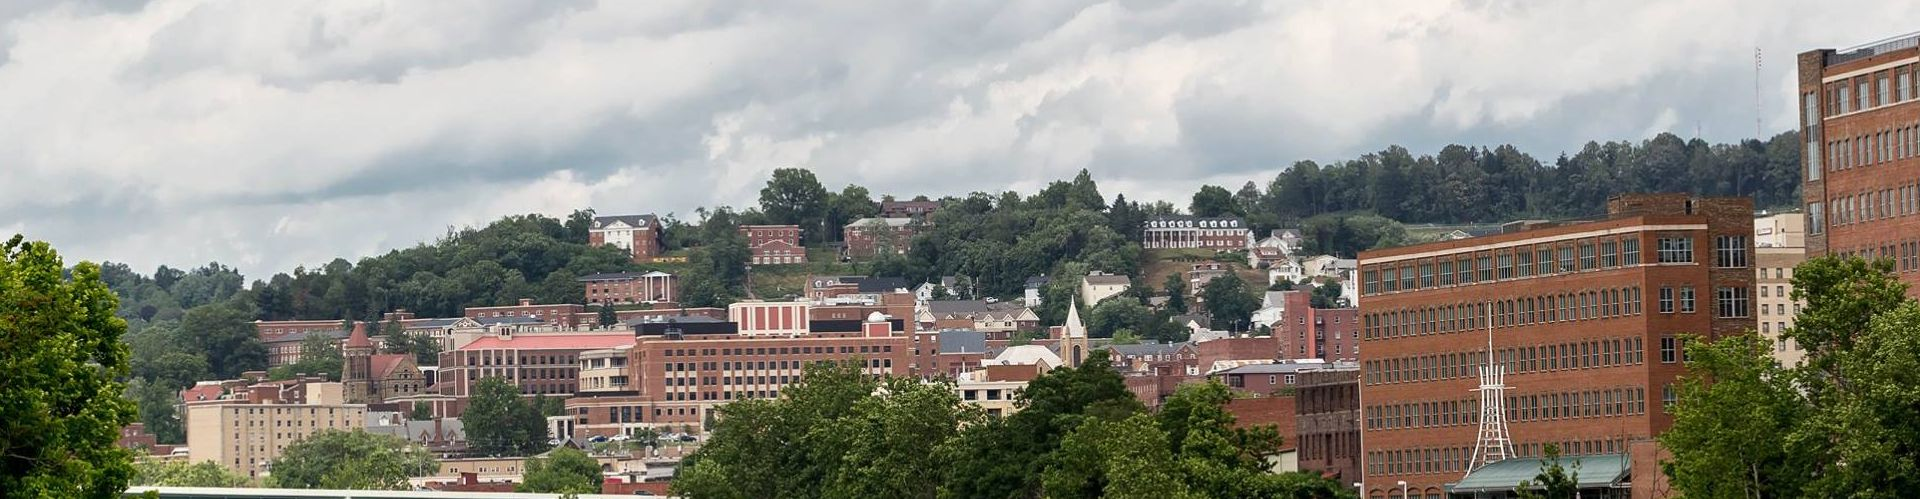 Downtown Morgantown - Amy Sine Photography